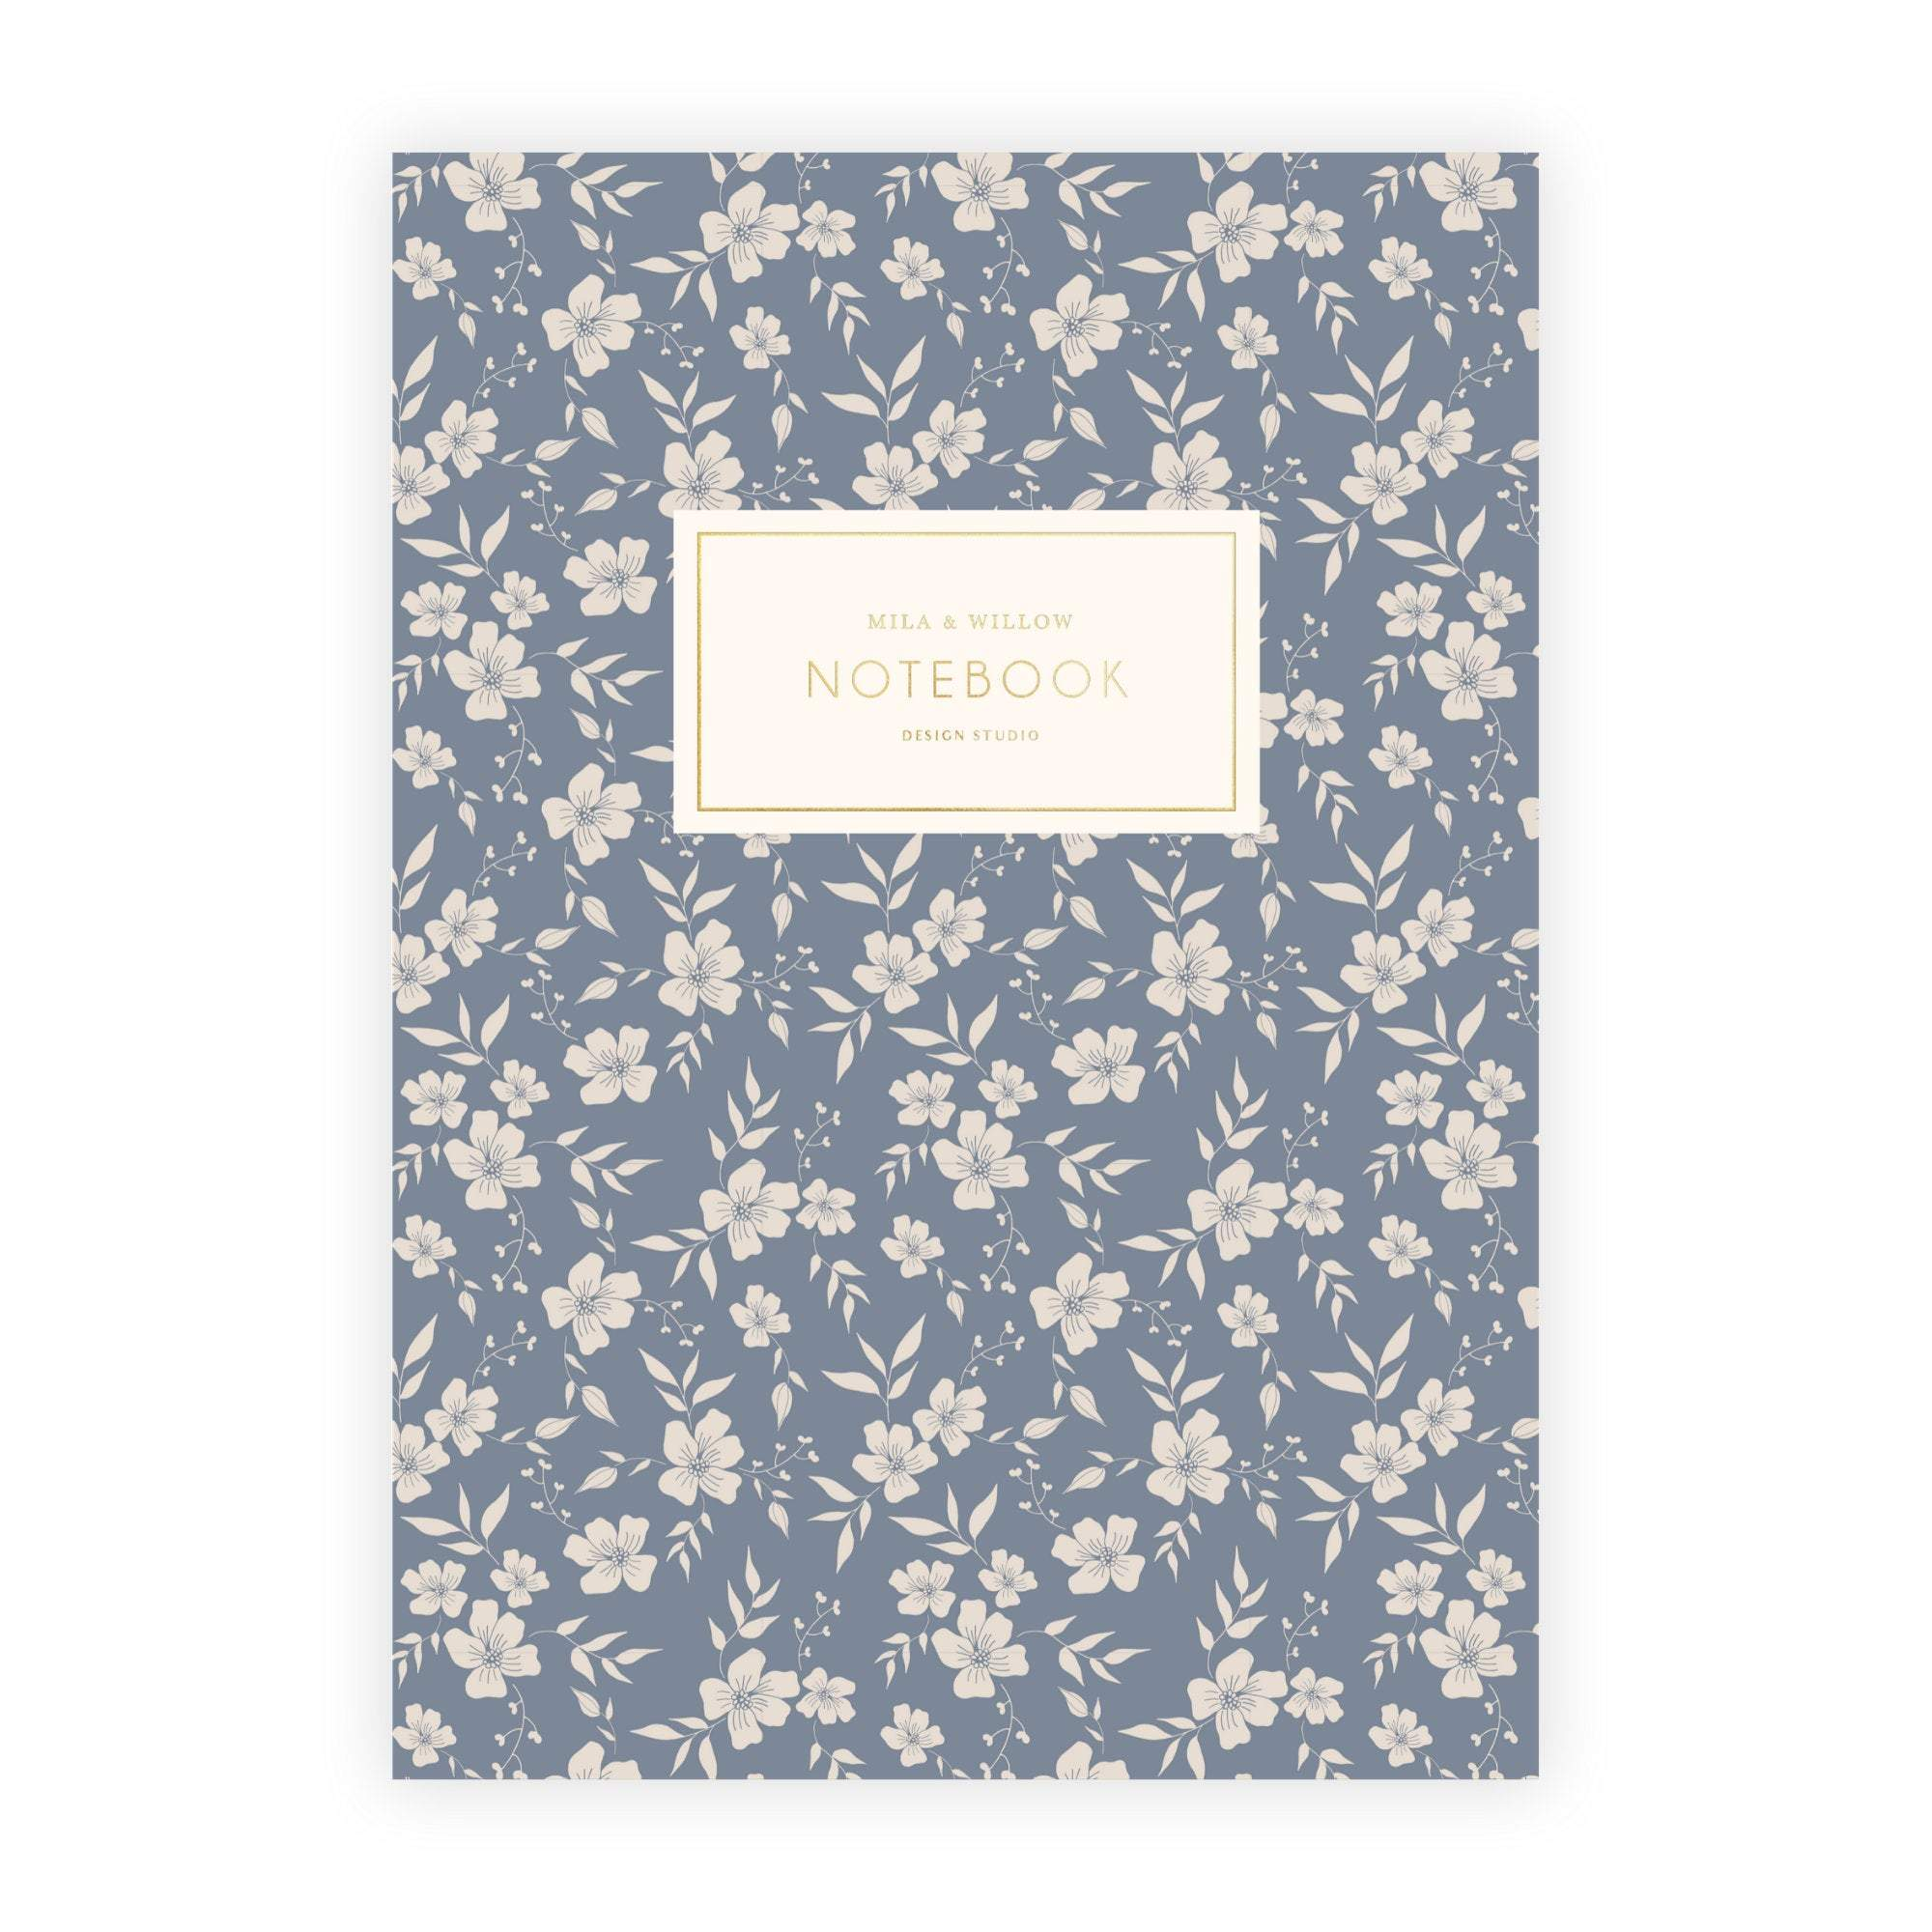 carnet-mila-and-willow-maison-paon